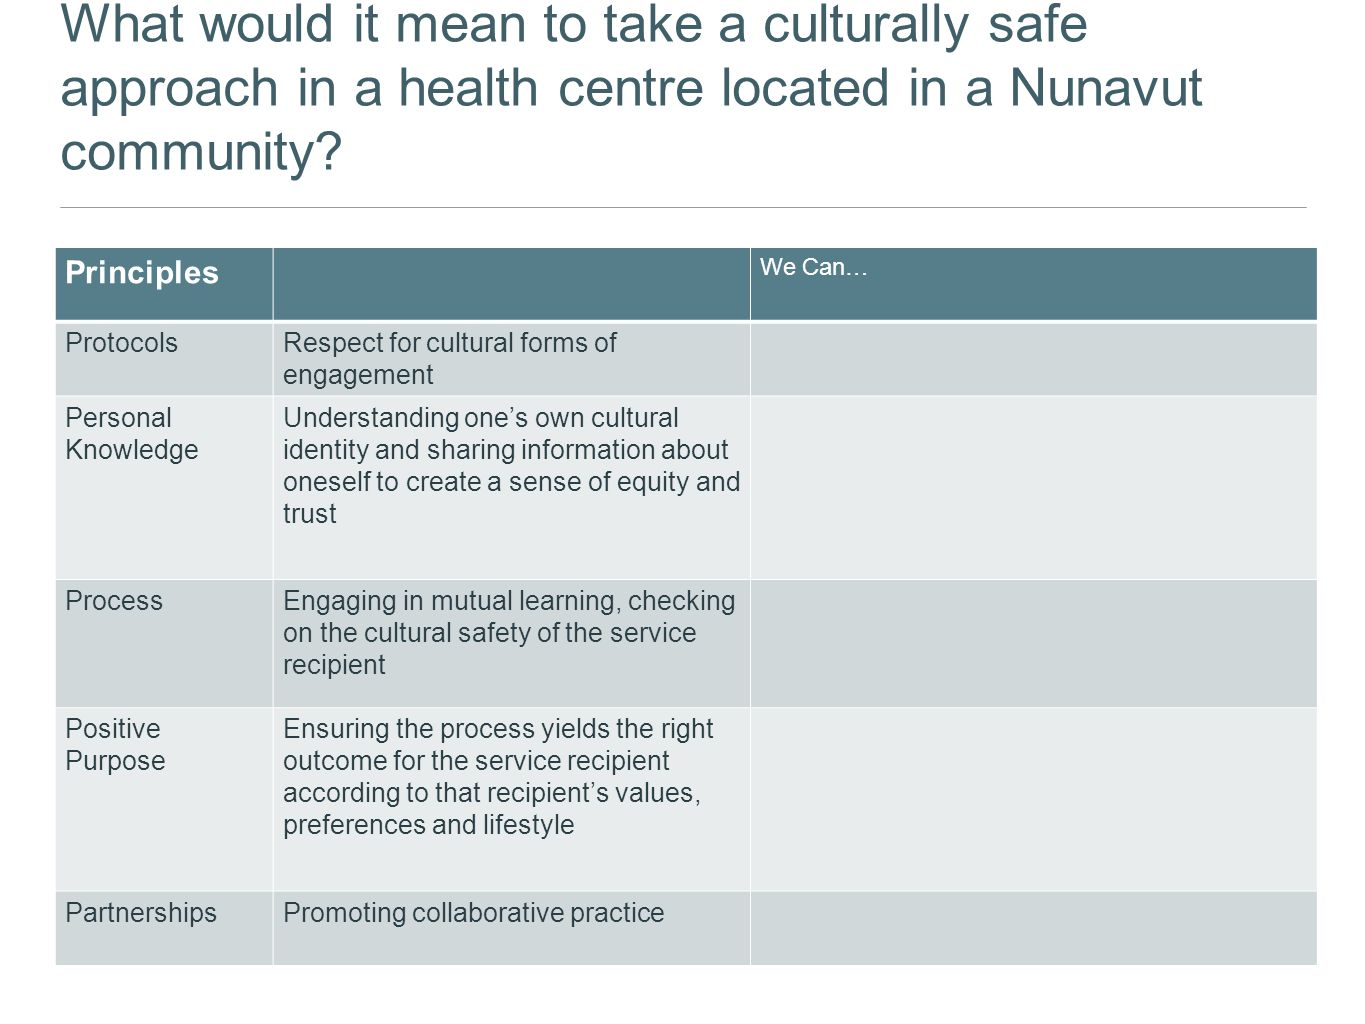 What would it mean to take a culturally safe approach in a health centre located in a Nunavut community